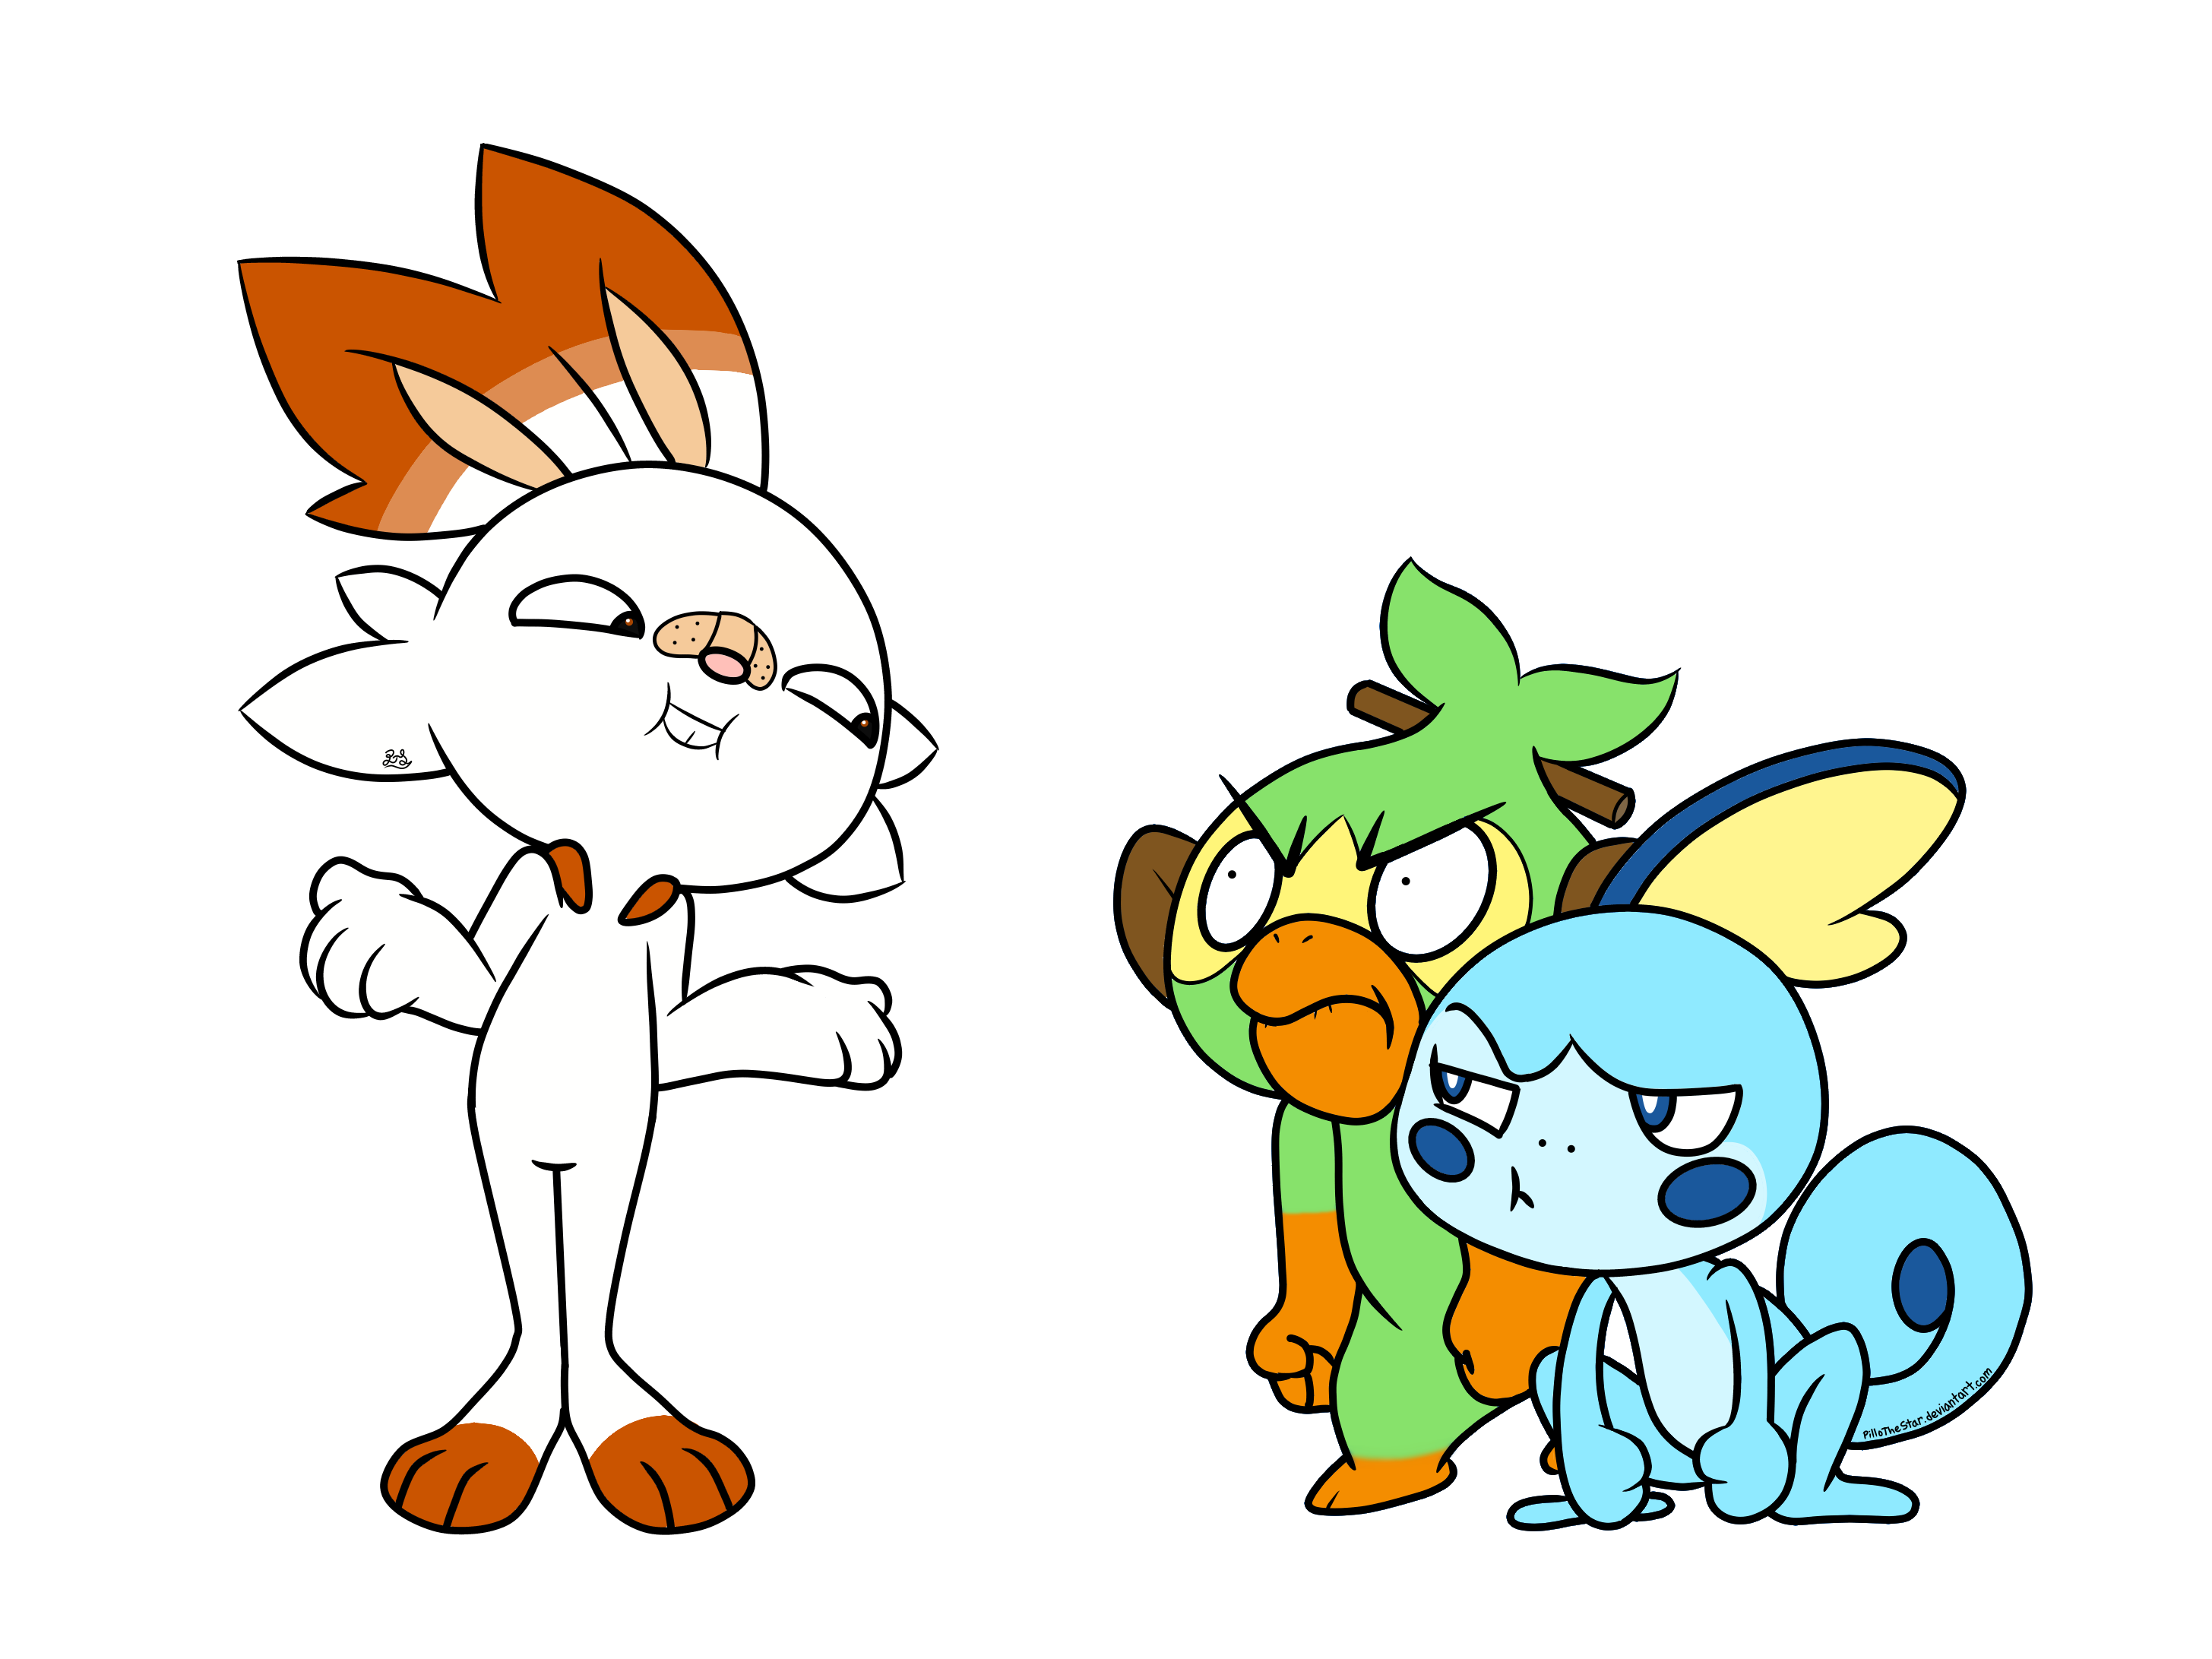 Pokemon Sword And Shield Starters By Pillothestar On Newgrounds